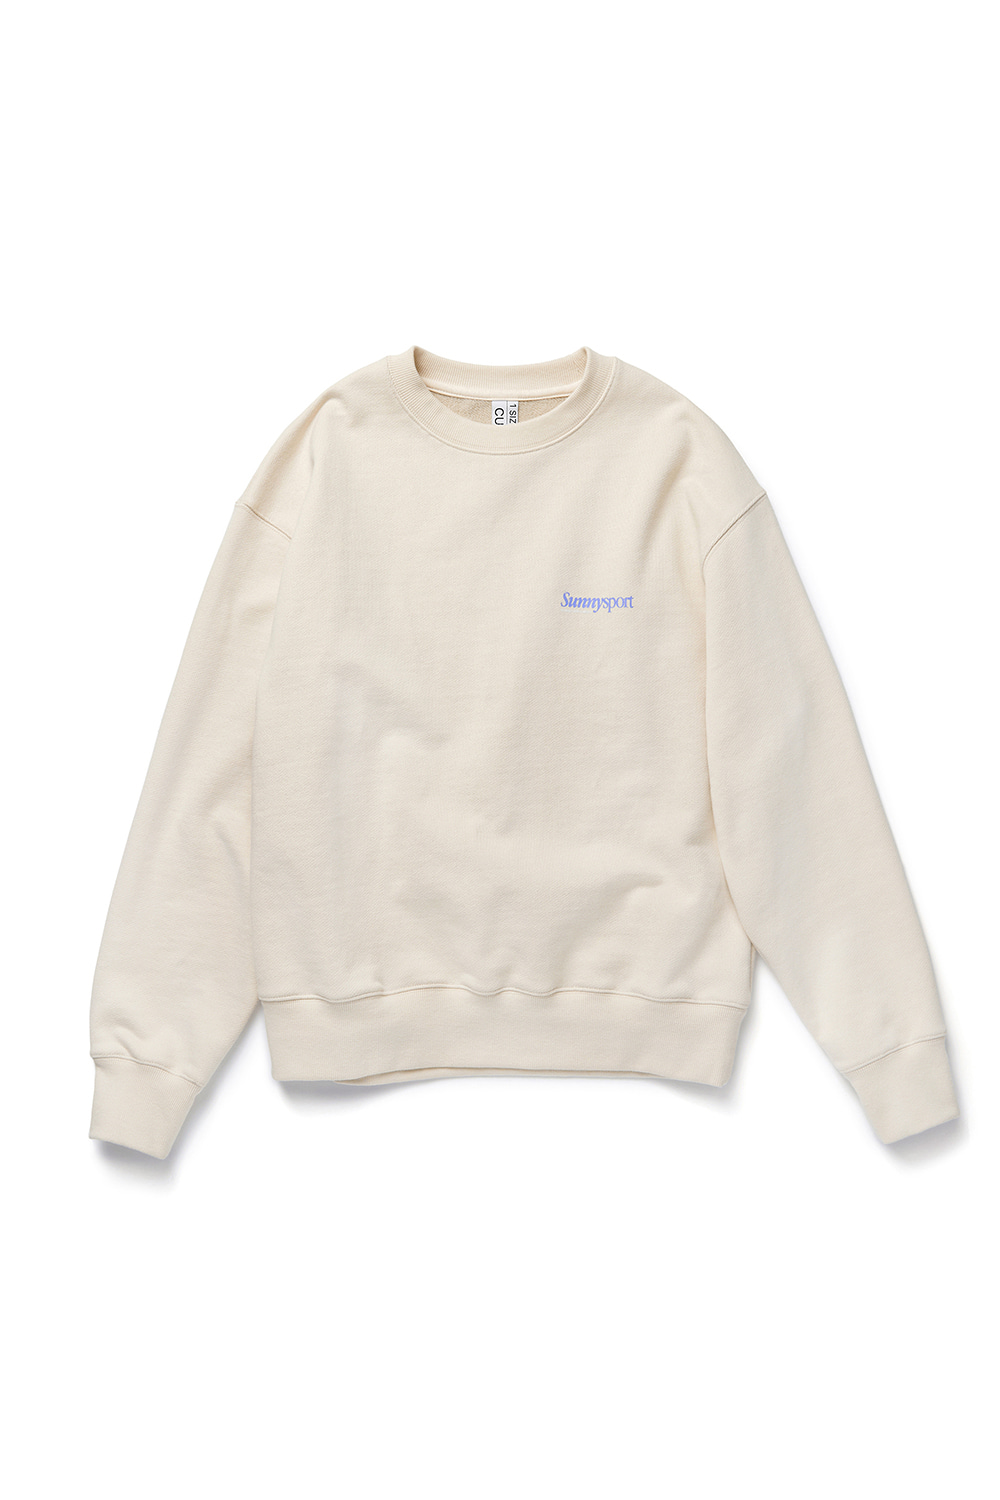 SUNNYSPORT CREWNECK [CREAM]